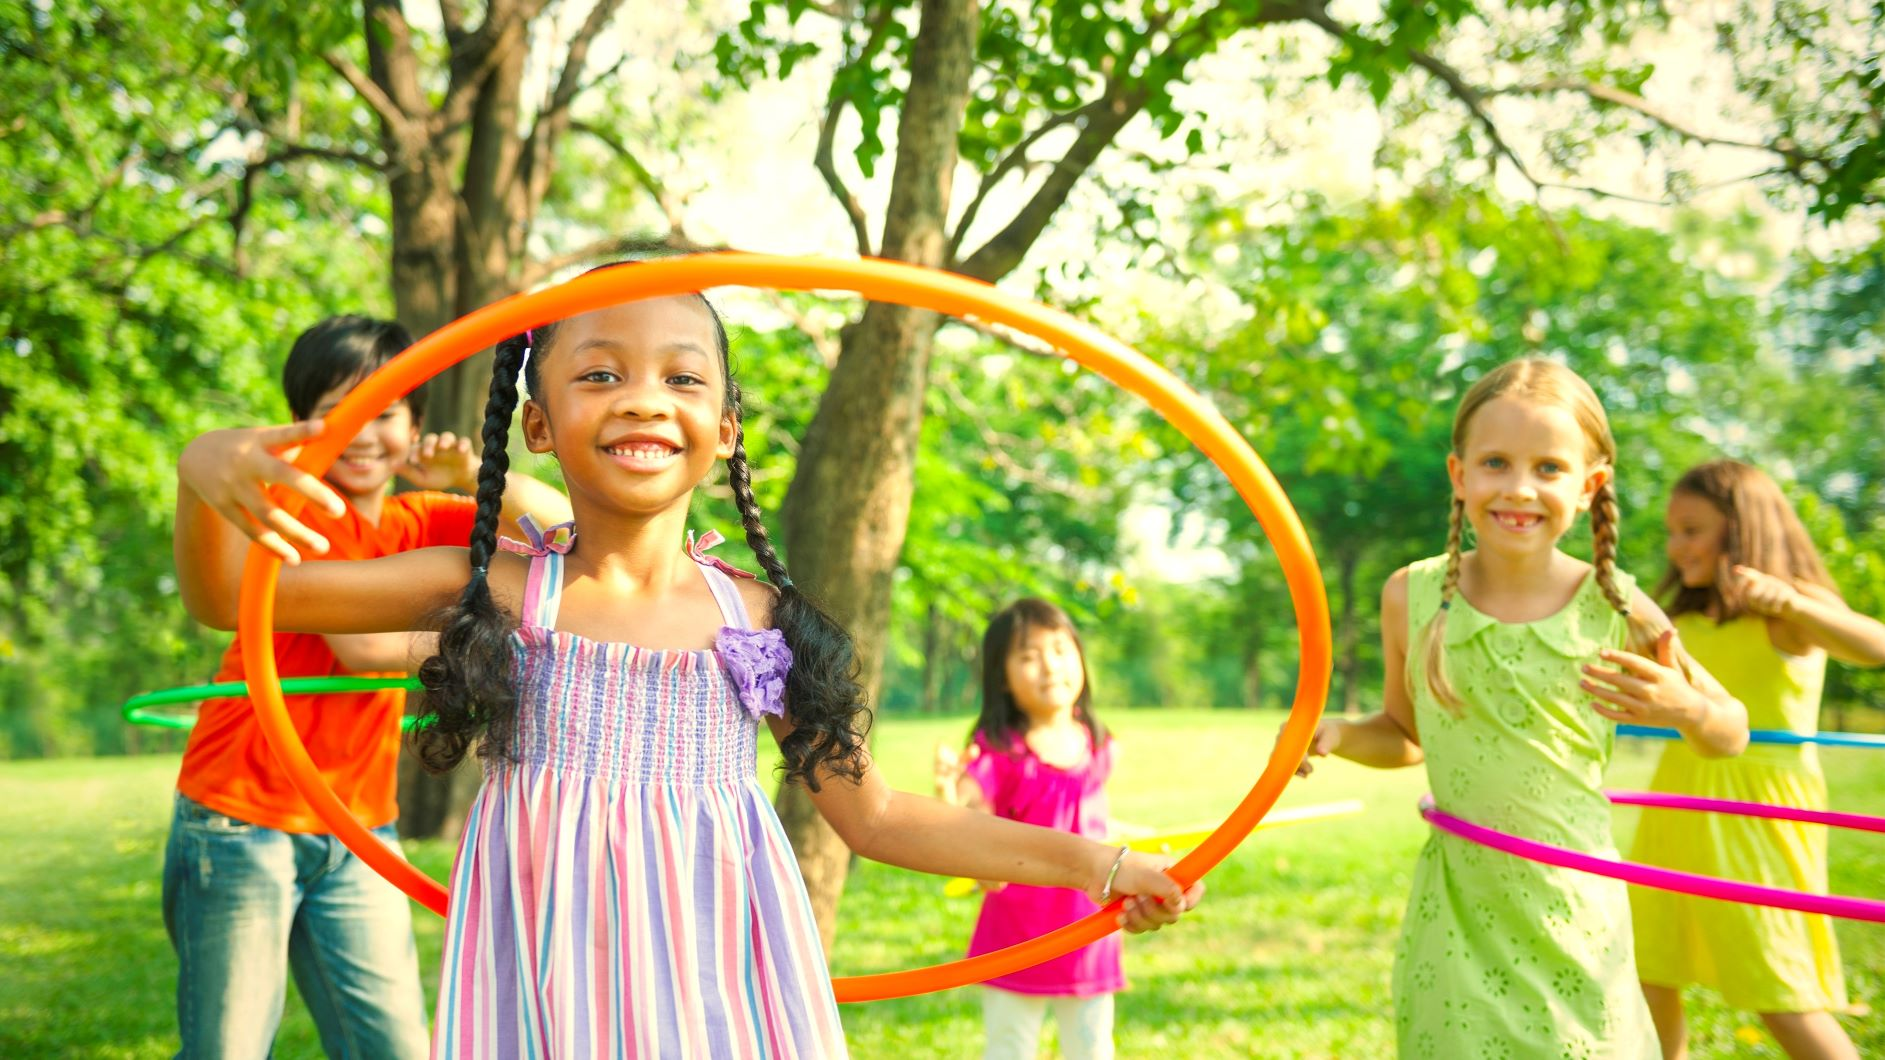 cute-diverse-kids-playing-with-hula-hoops-NT5EF8M.jpg